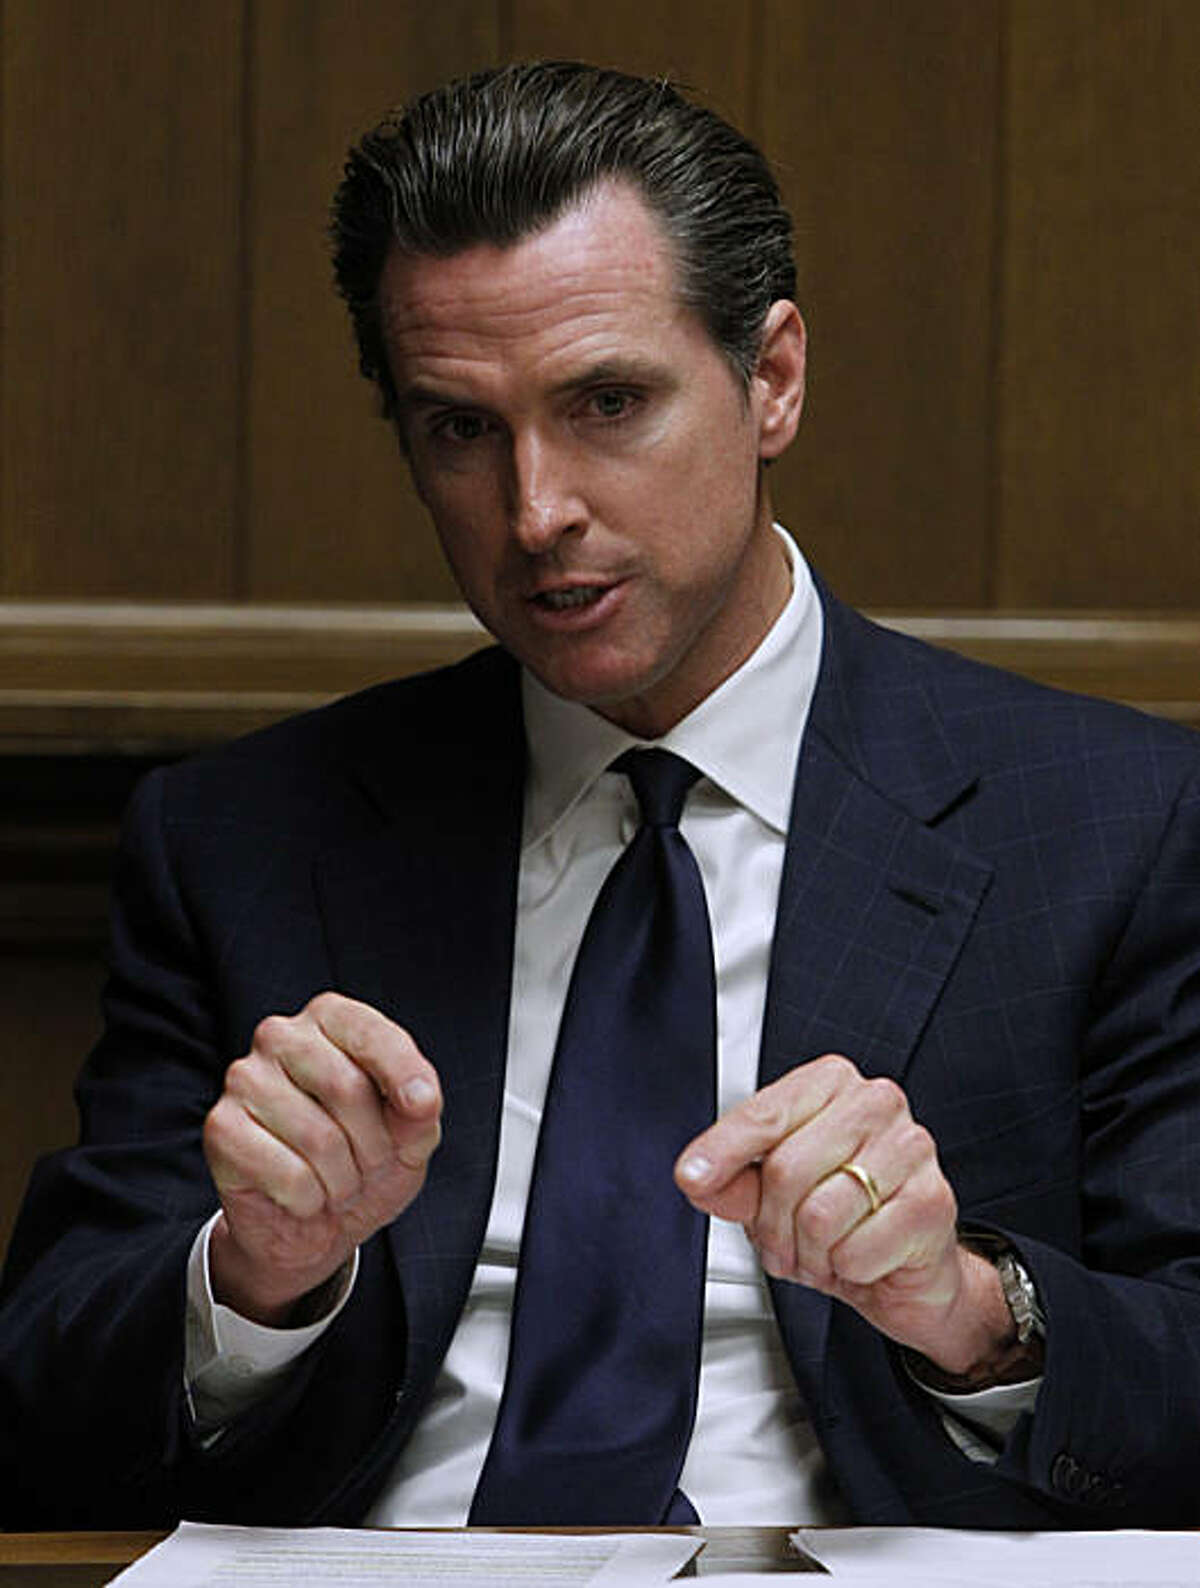 Mayor Gavin Newsom meets with the Chronicle Editorial Board in San Francisco, Calif., on Wednesday, Dec. 22, 2010. Newsom will step down as mayor in January when he begins a new chapter in his political career as California's Lieutenant Governor.